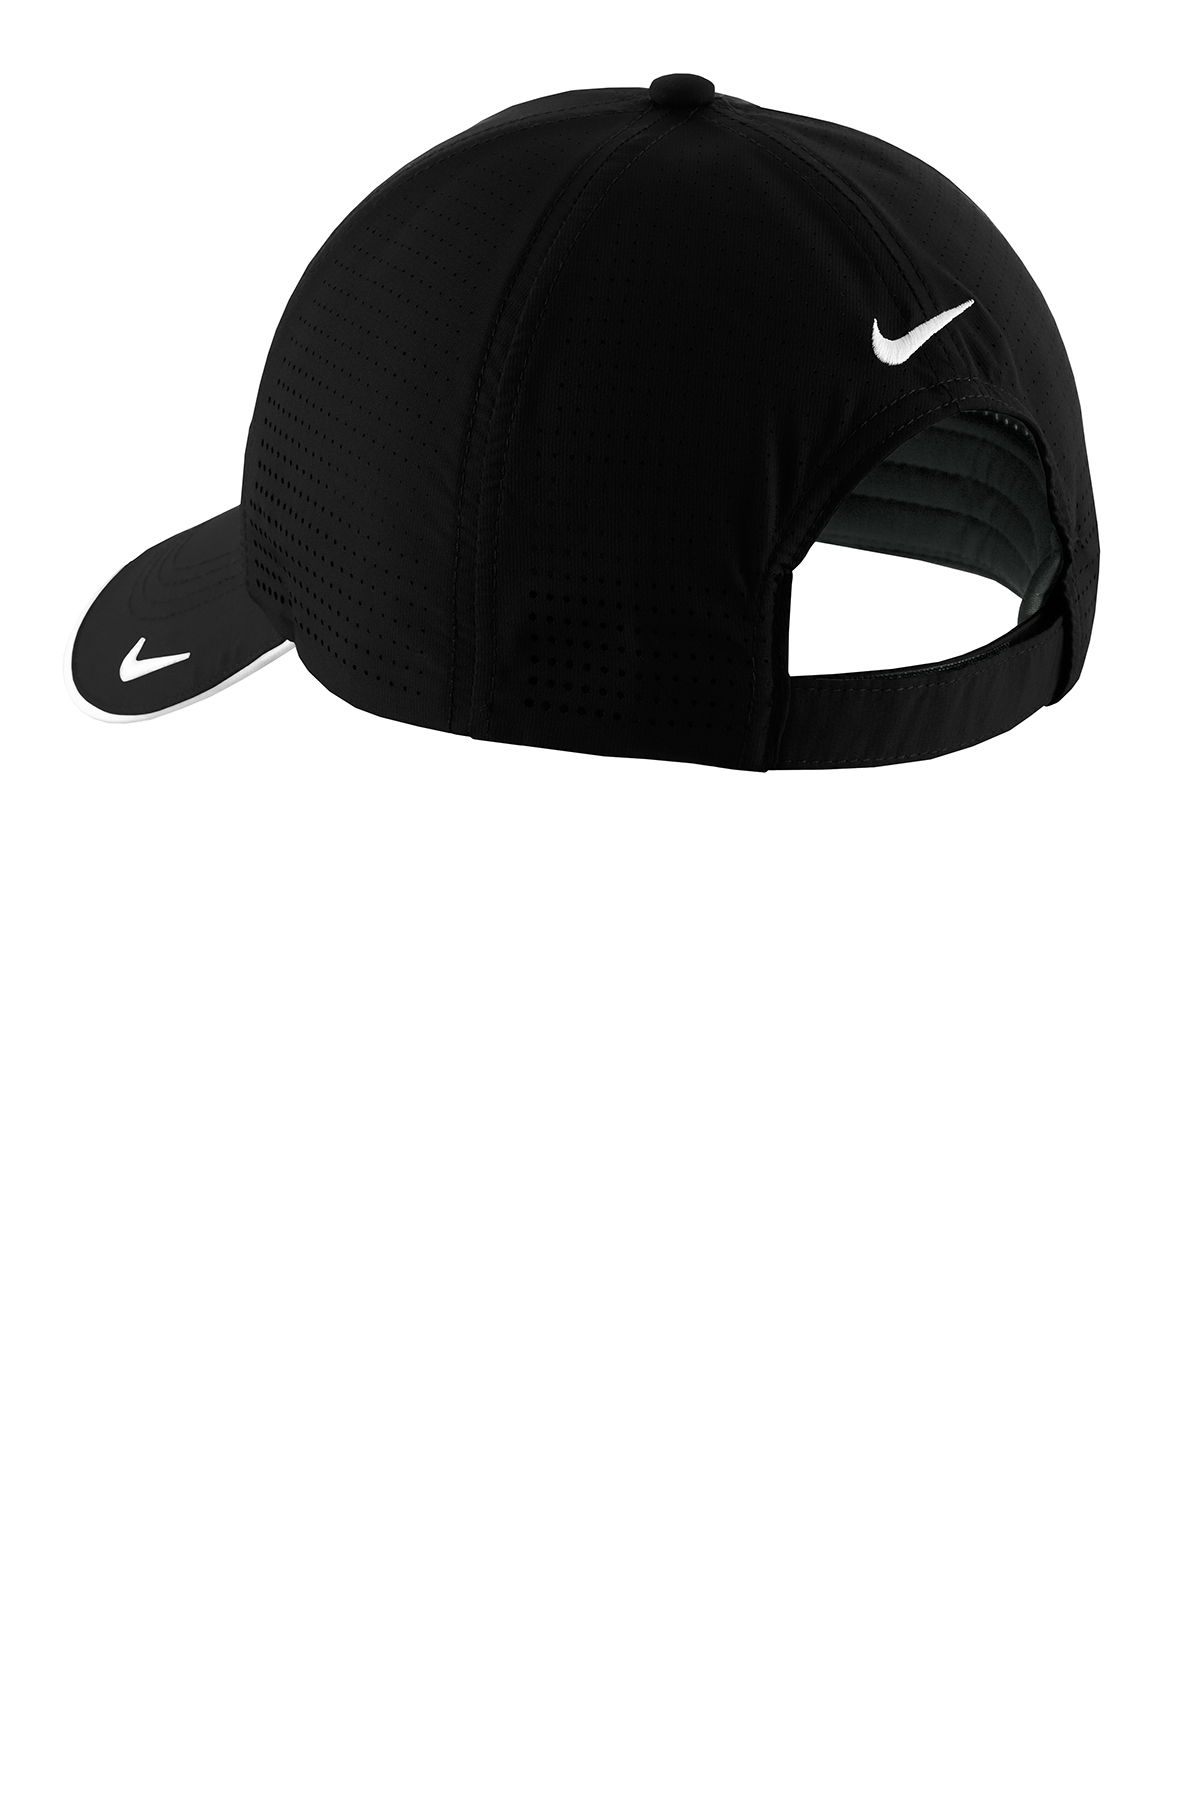 ... Nike Dri-FIT Swoosh Perforated Cap. A maximum of 8 logos have been  uploaded. Please remove a logo from My Logos to continue